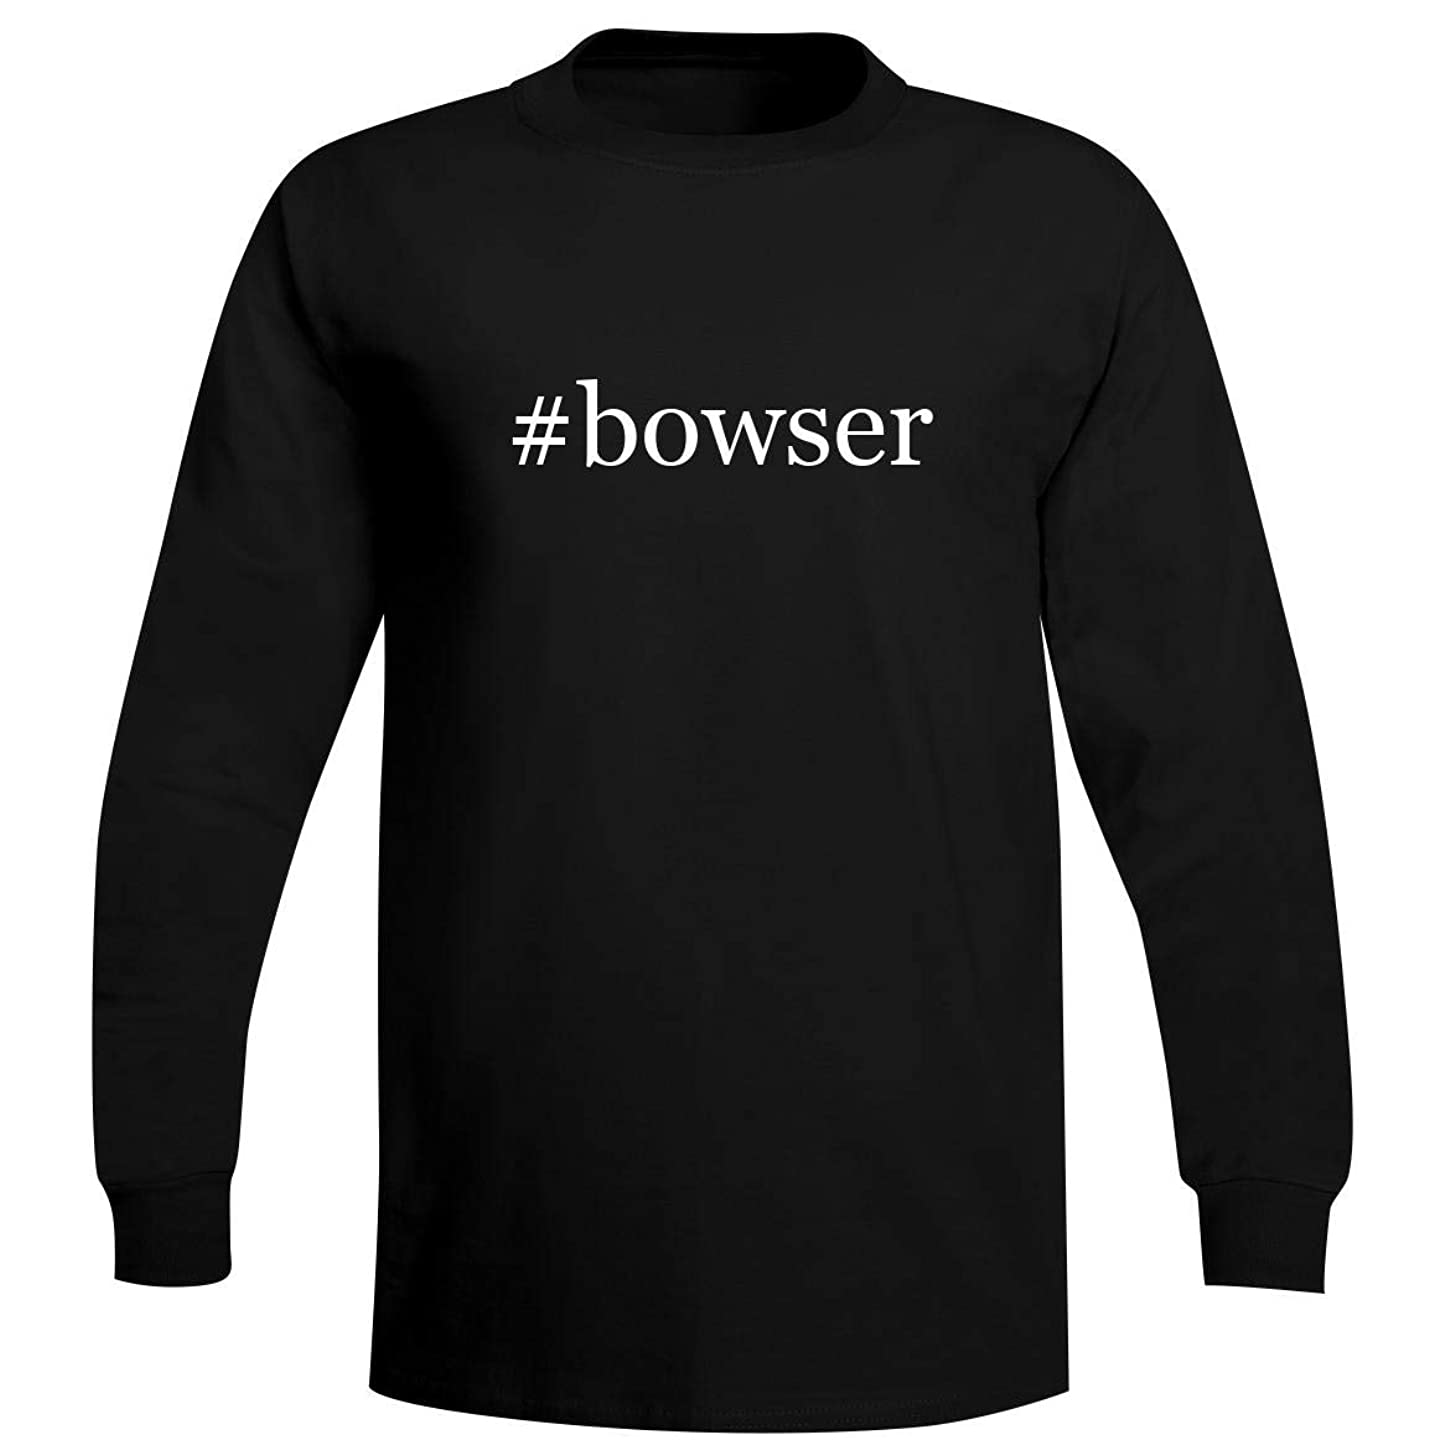 The Town Butler #Bowser - A Soft & Comfortable Hashtag Men's Long Sleeve T-Shirt